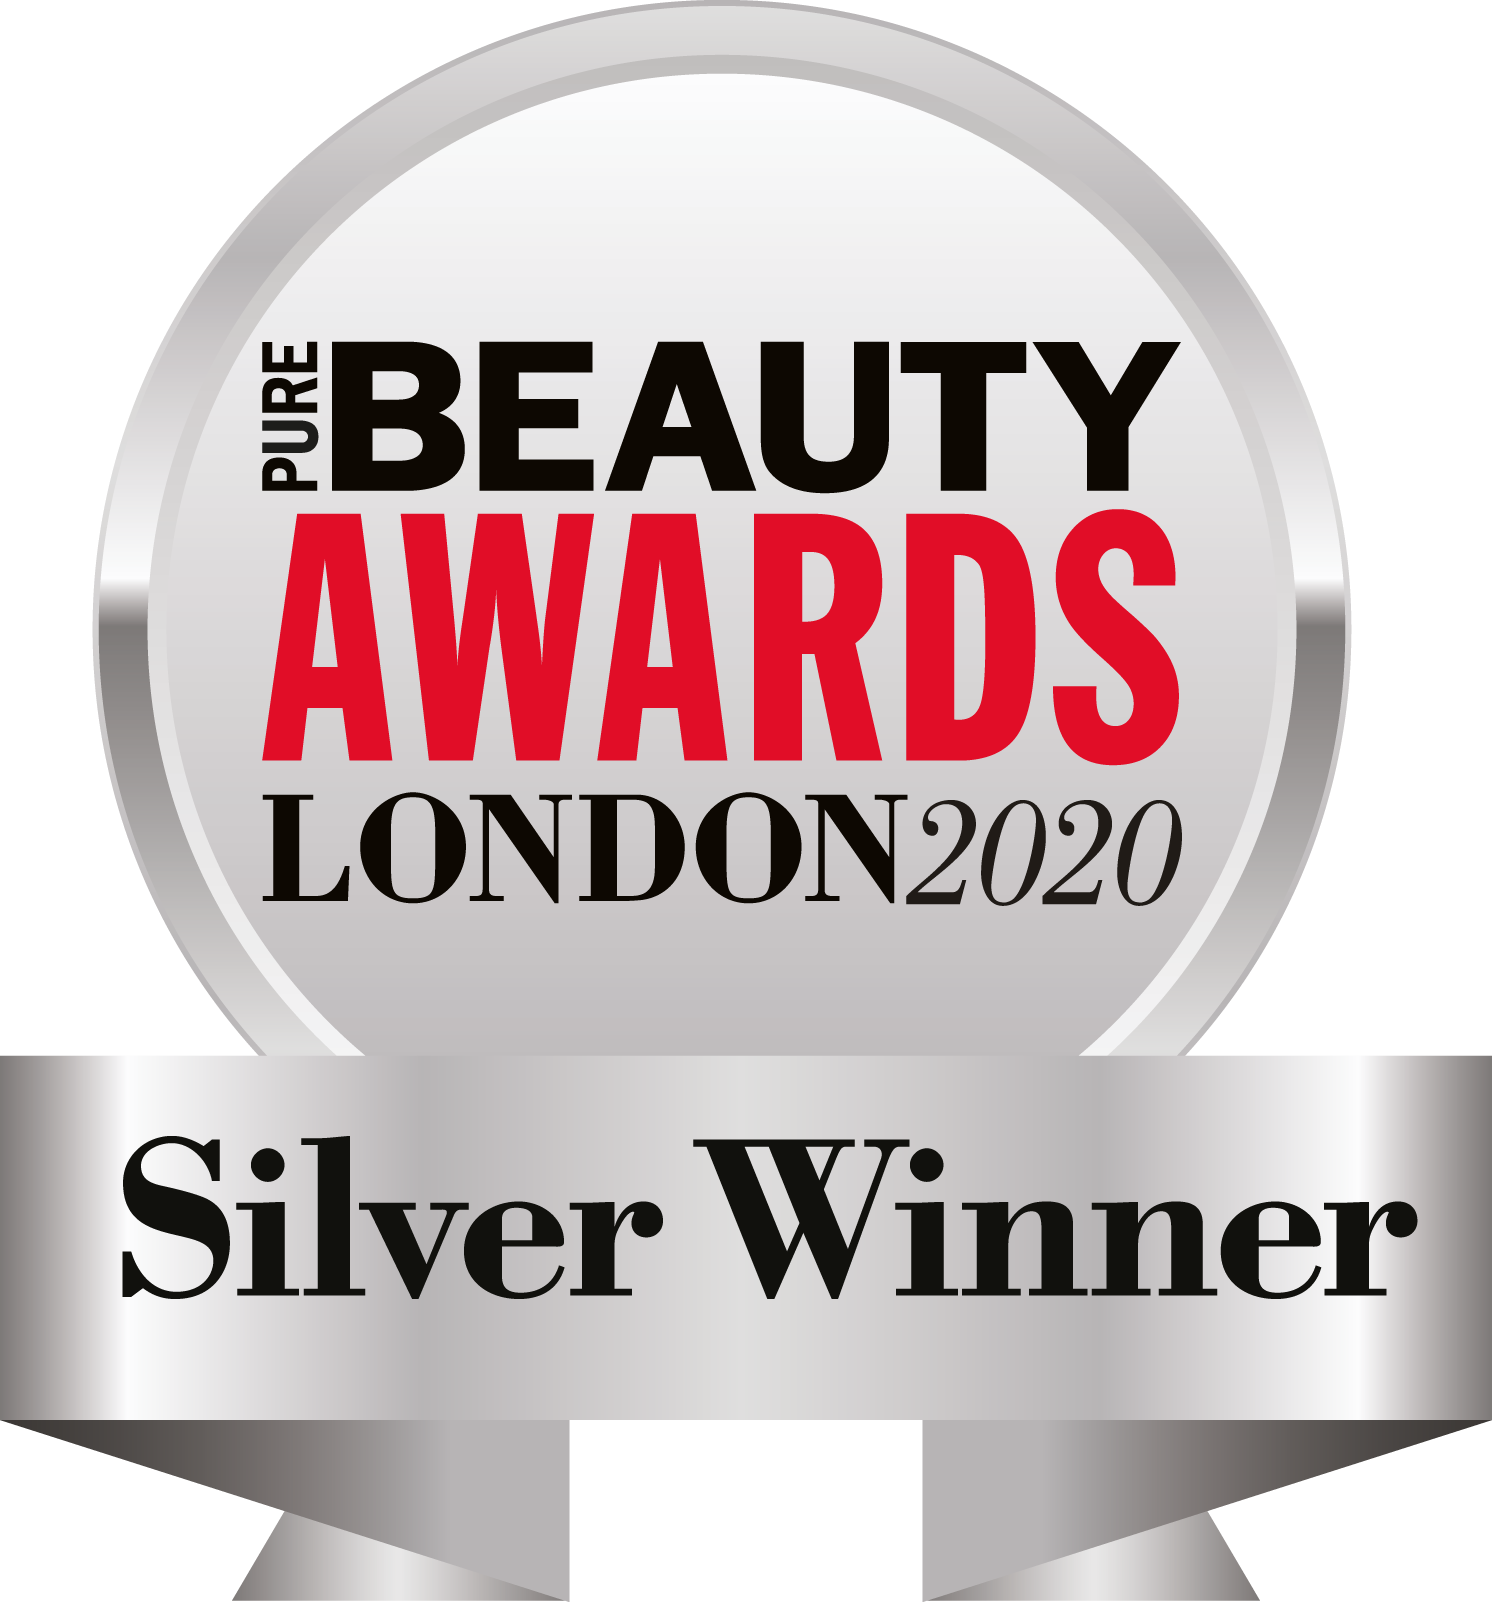 Pure Beauty Awards London 2020